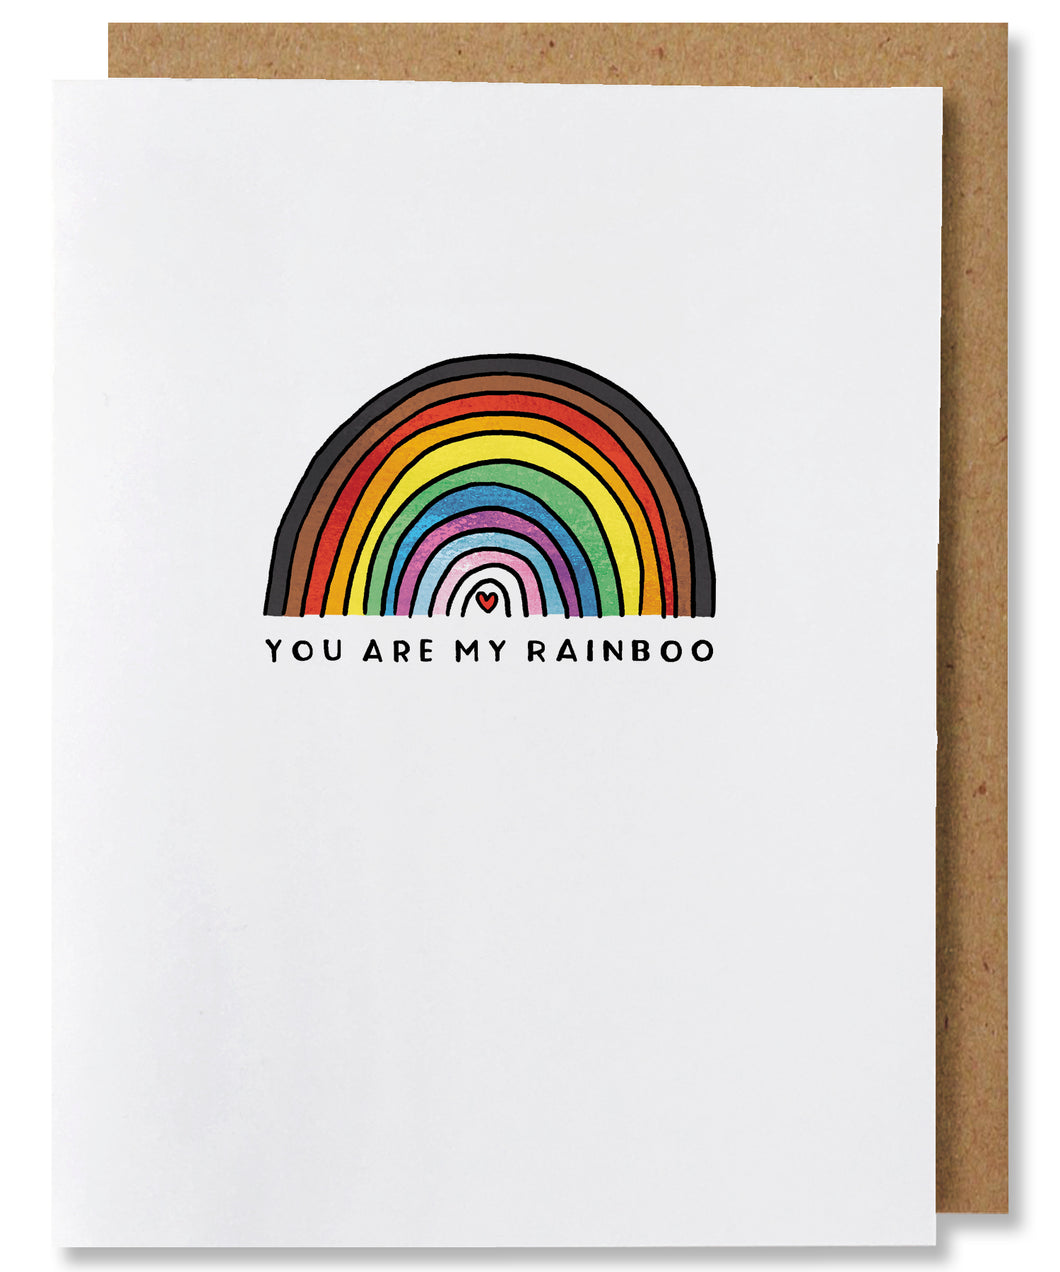 My Rainboo card features the LGBTQIA+ flag in the shape of a rainbow. The outermost color band is black, then brown, red, orange, yellow, green, blue, purple, with light blue, light pink, and white as the 3 innermost bands representing the Trans flag. In the very center of the rainbow is a tiny red heart. Below the rainbow are the words